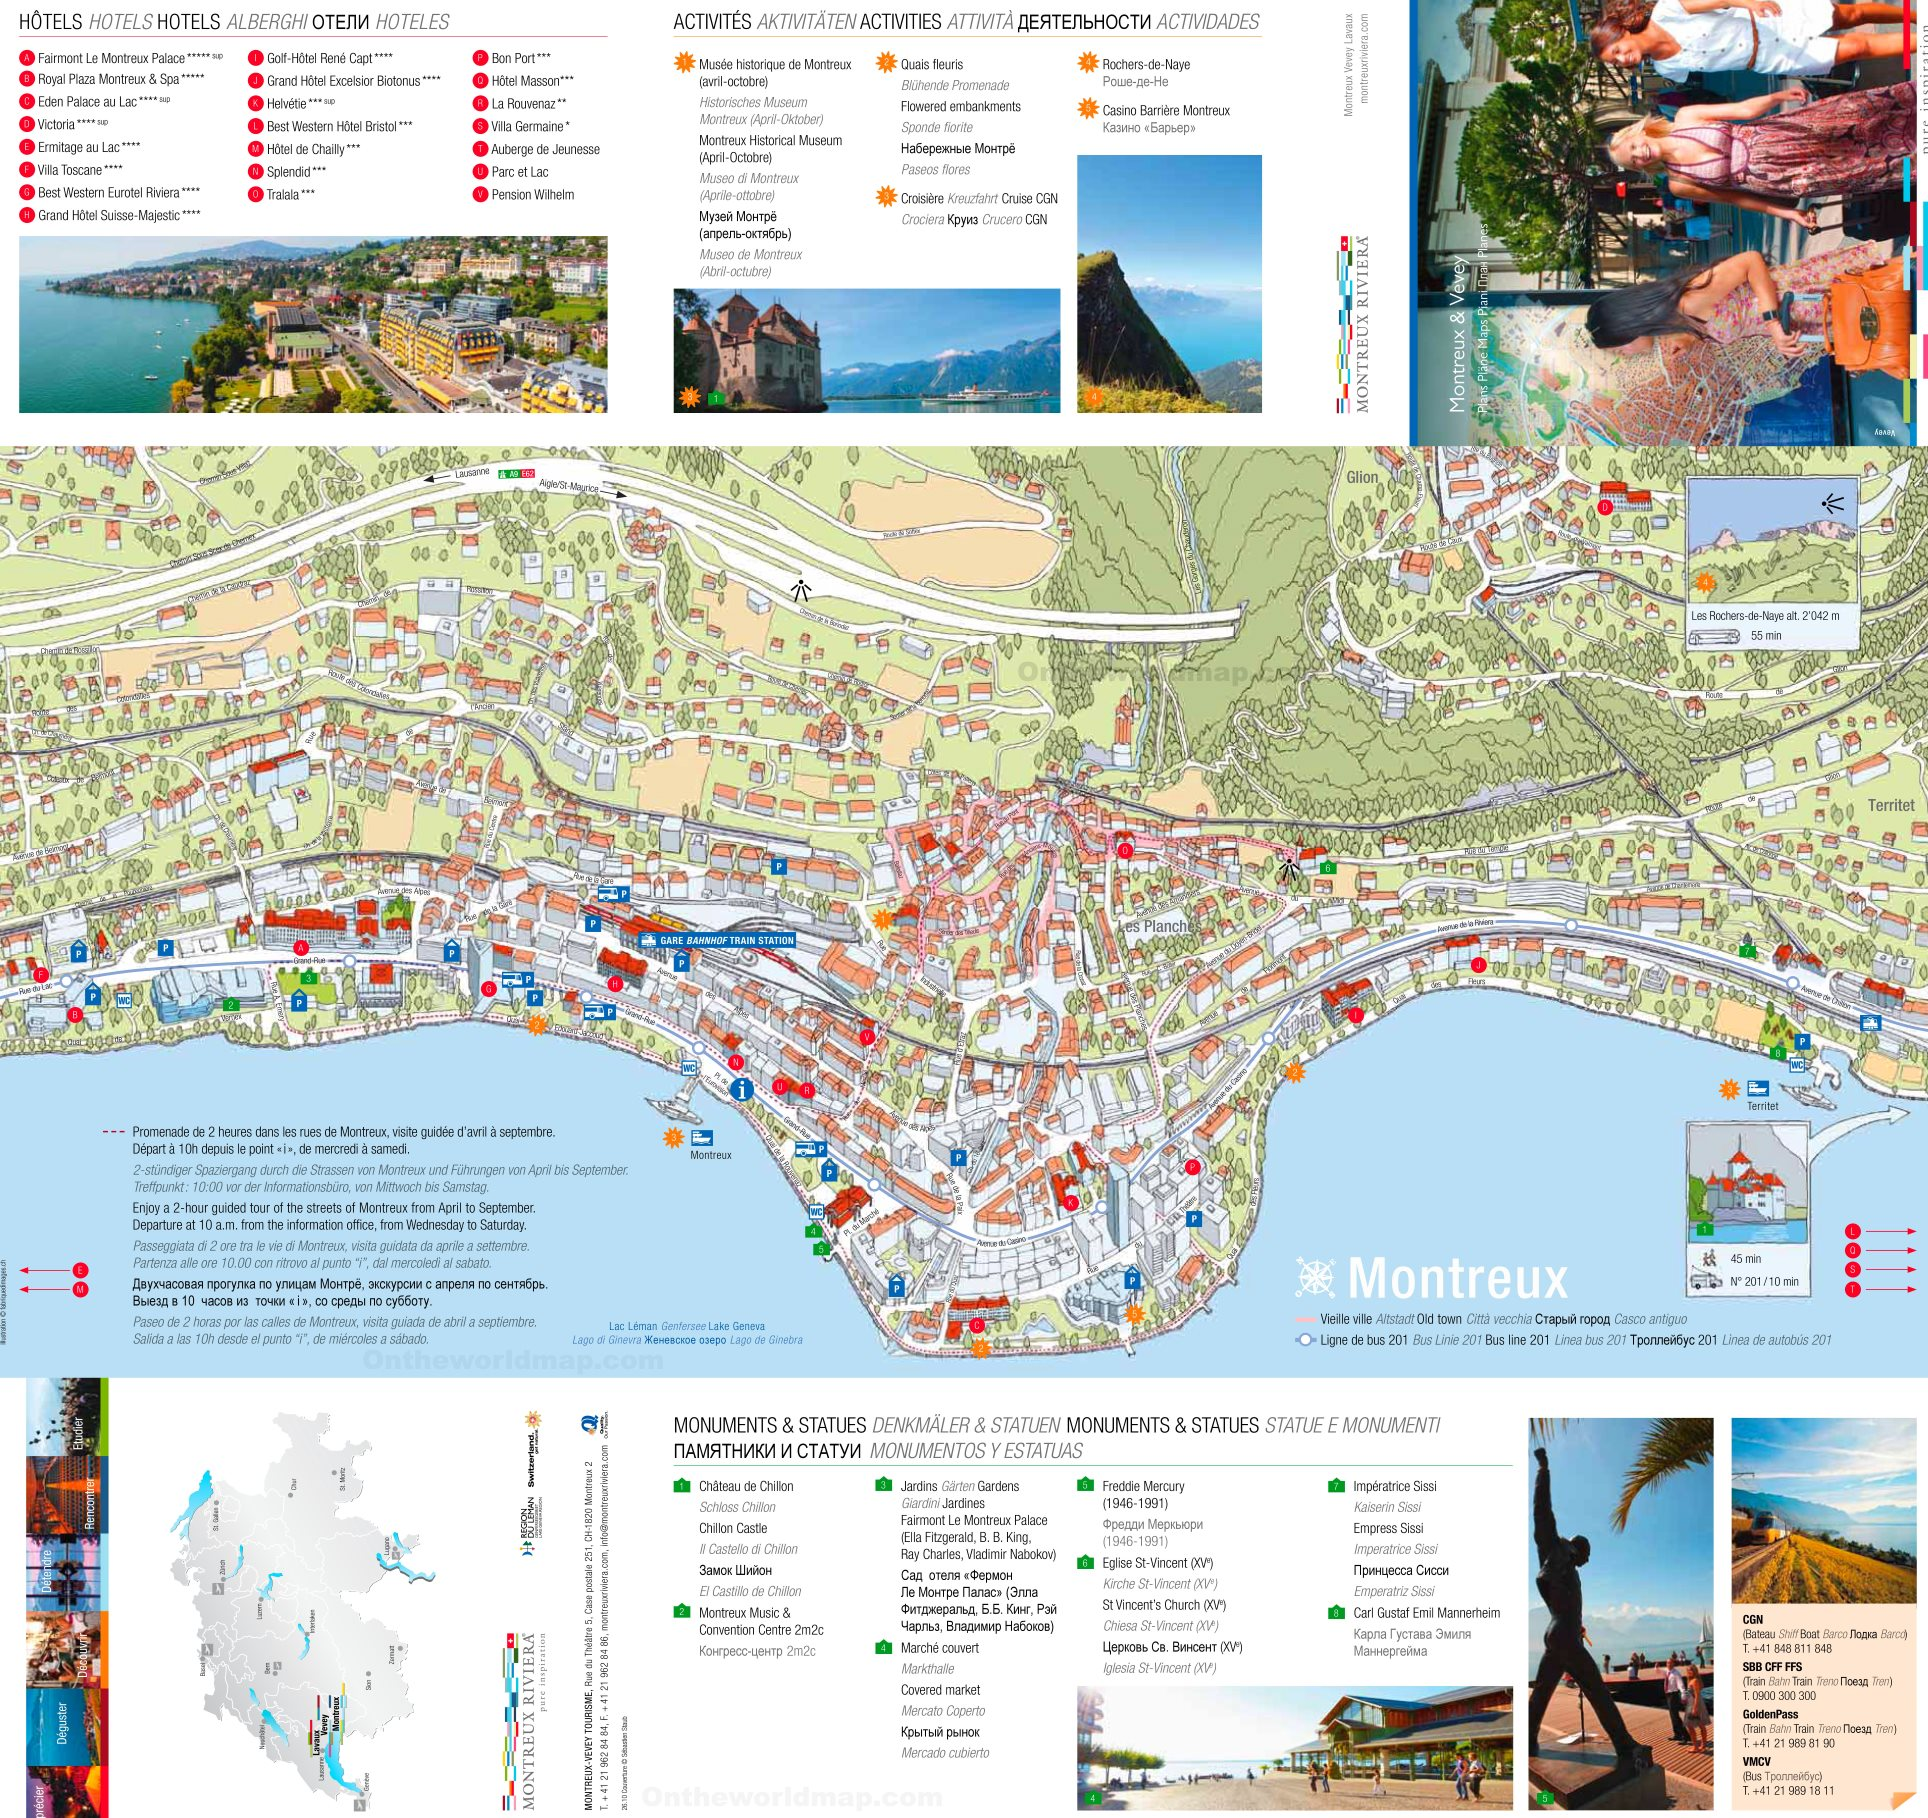 Montreux Hotels and Sightseeings Map